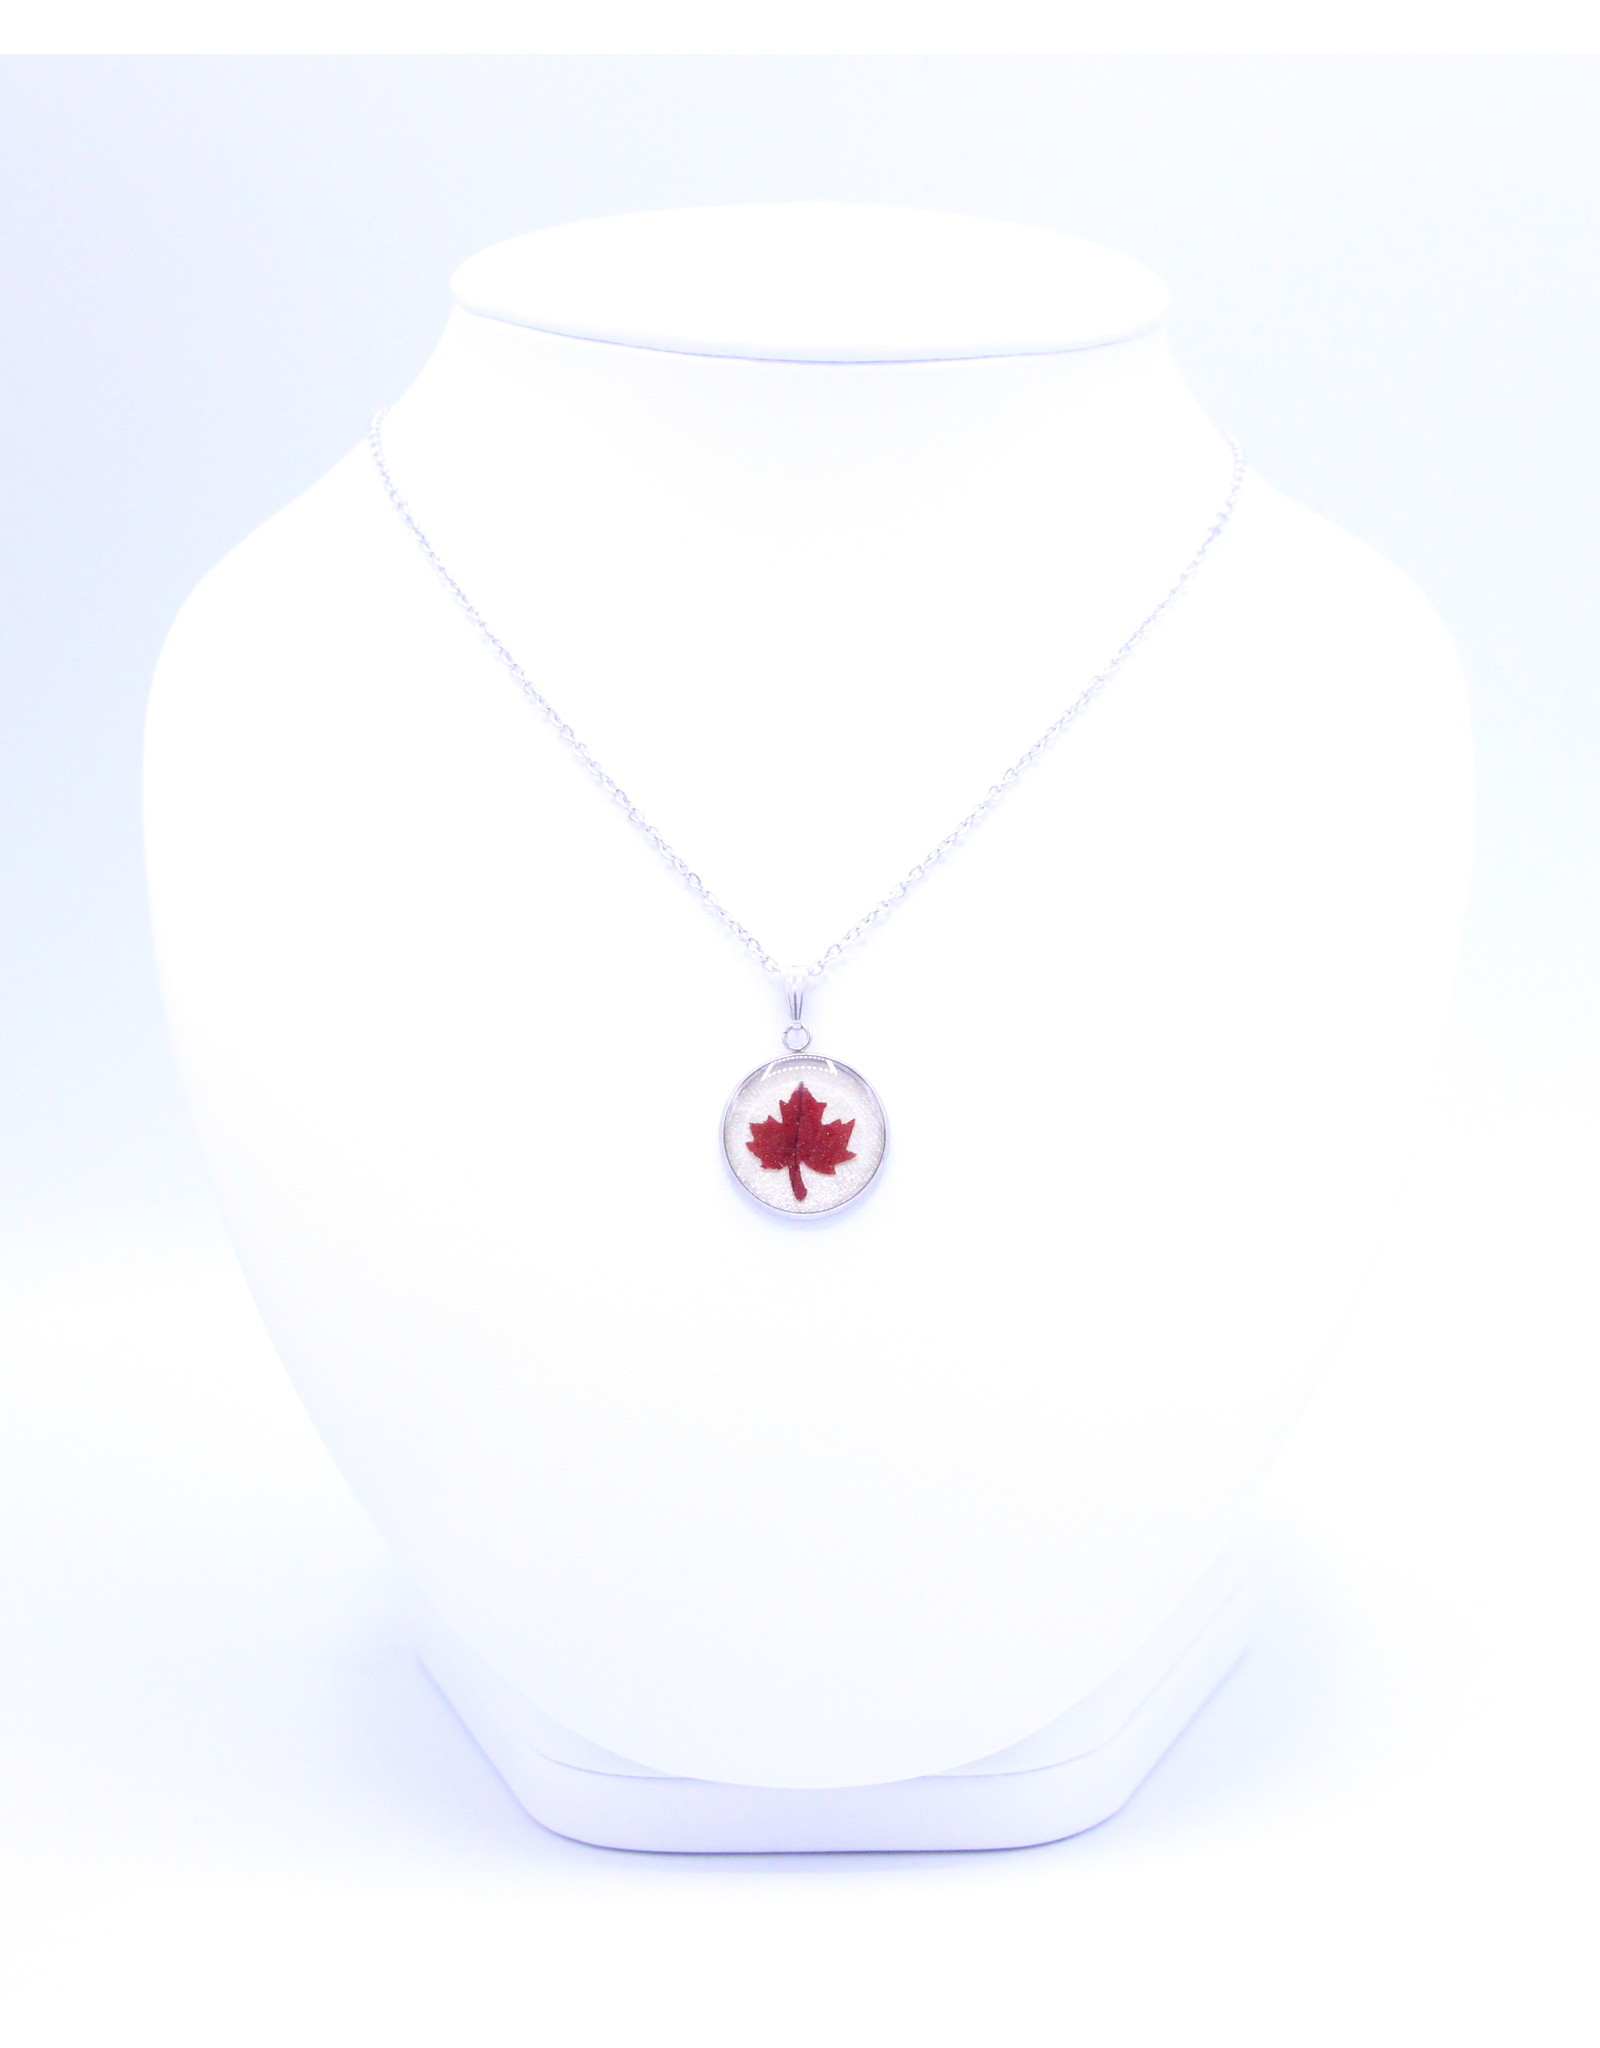 20mm Maple Leaf Necklace White - N20MPW1